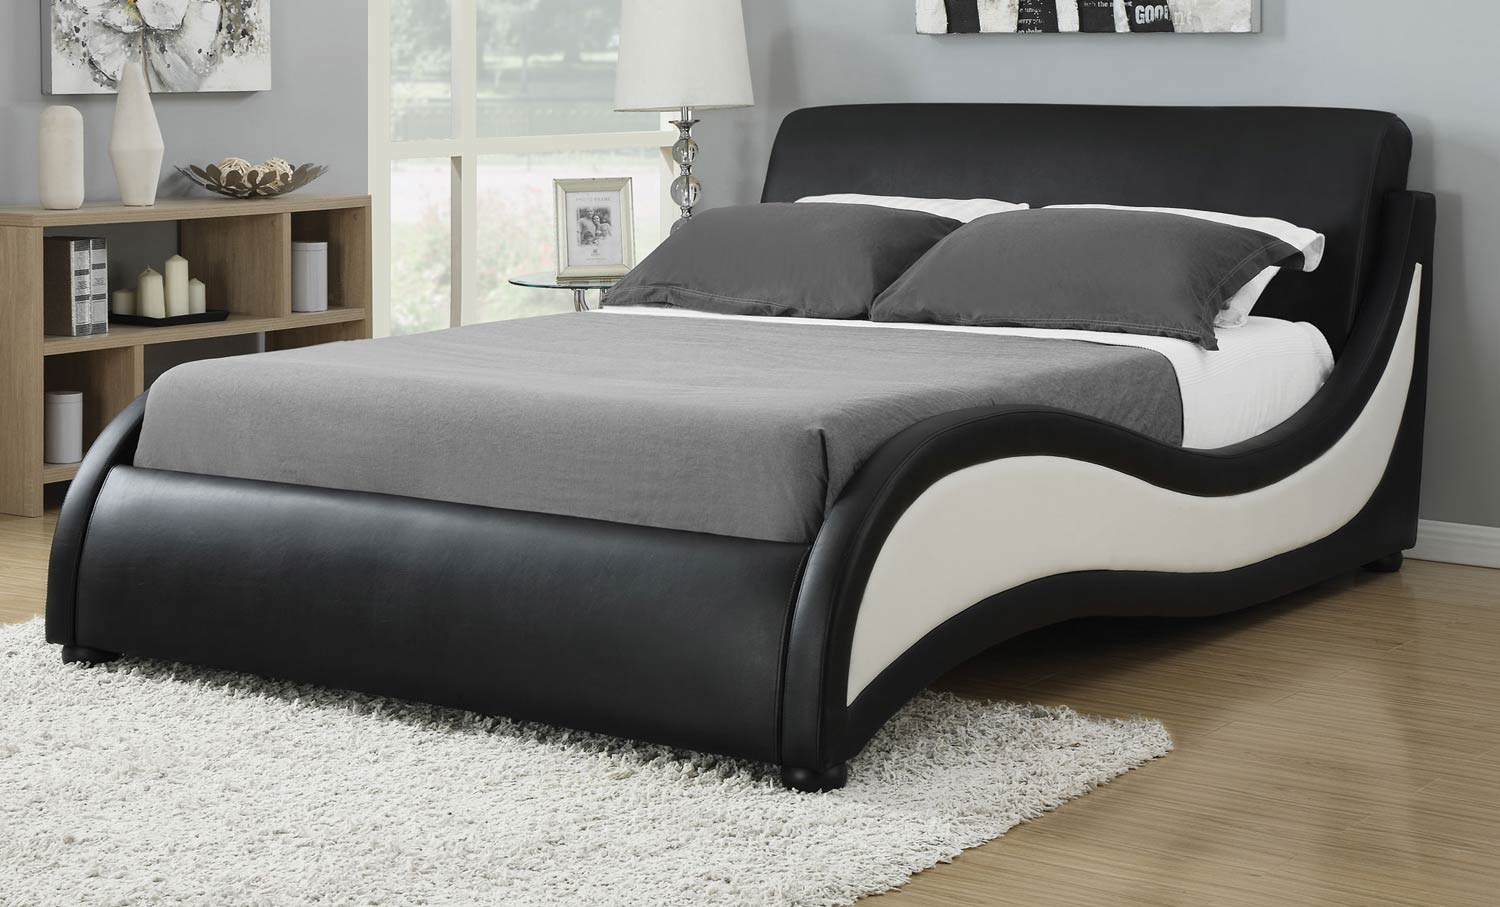 Coaster Niguel Upholstered Platform Bed - Black/White